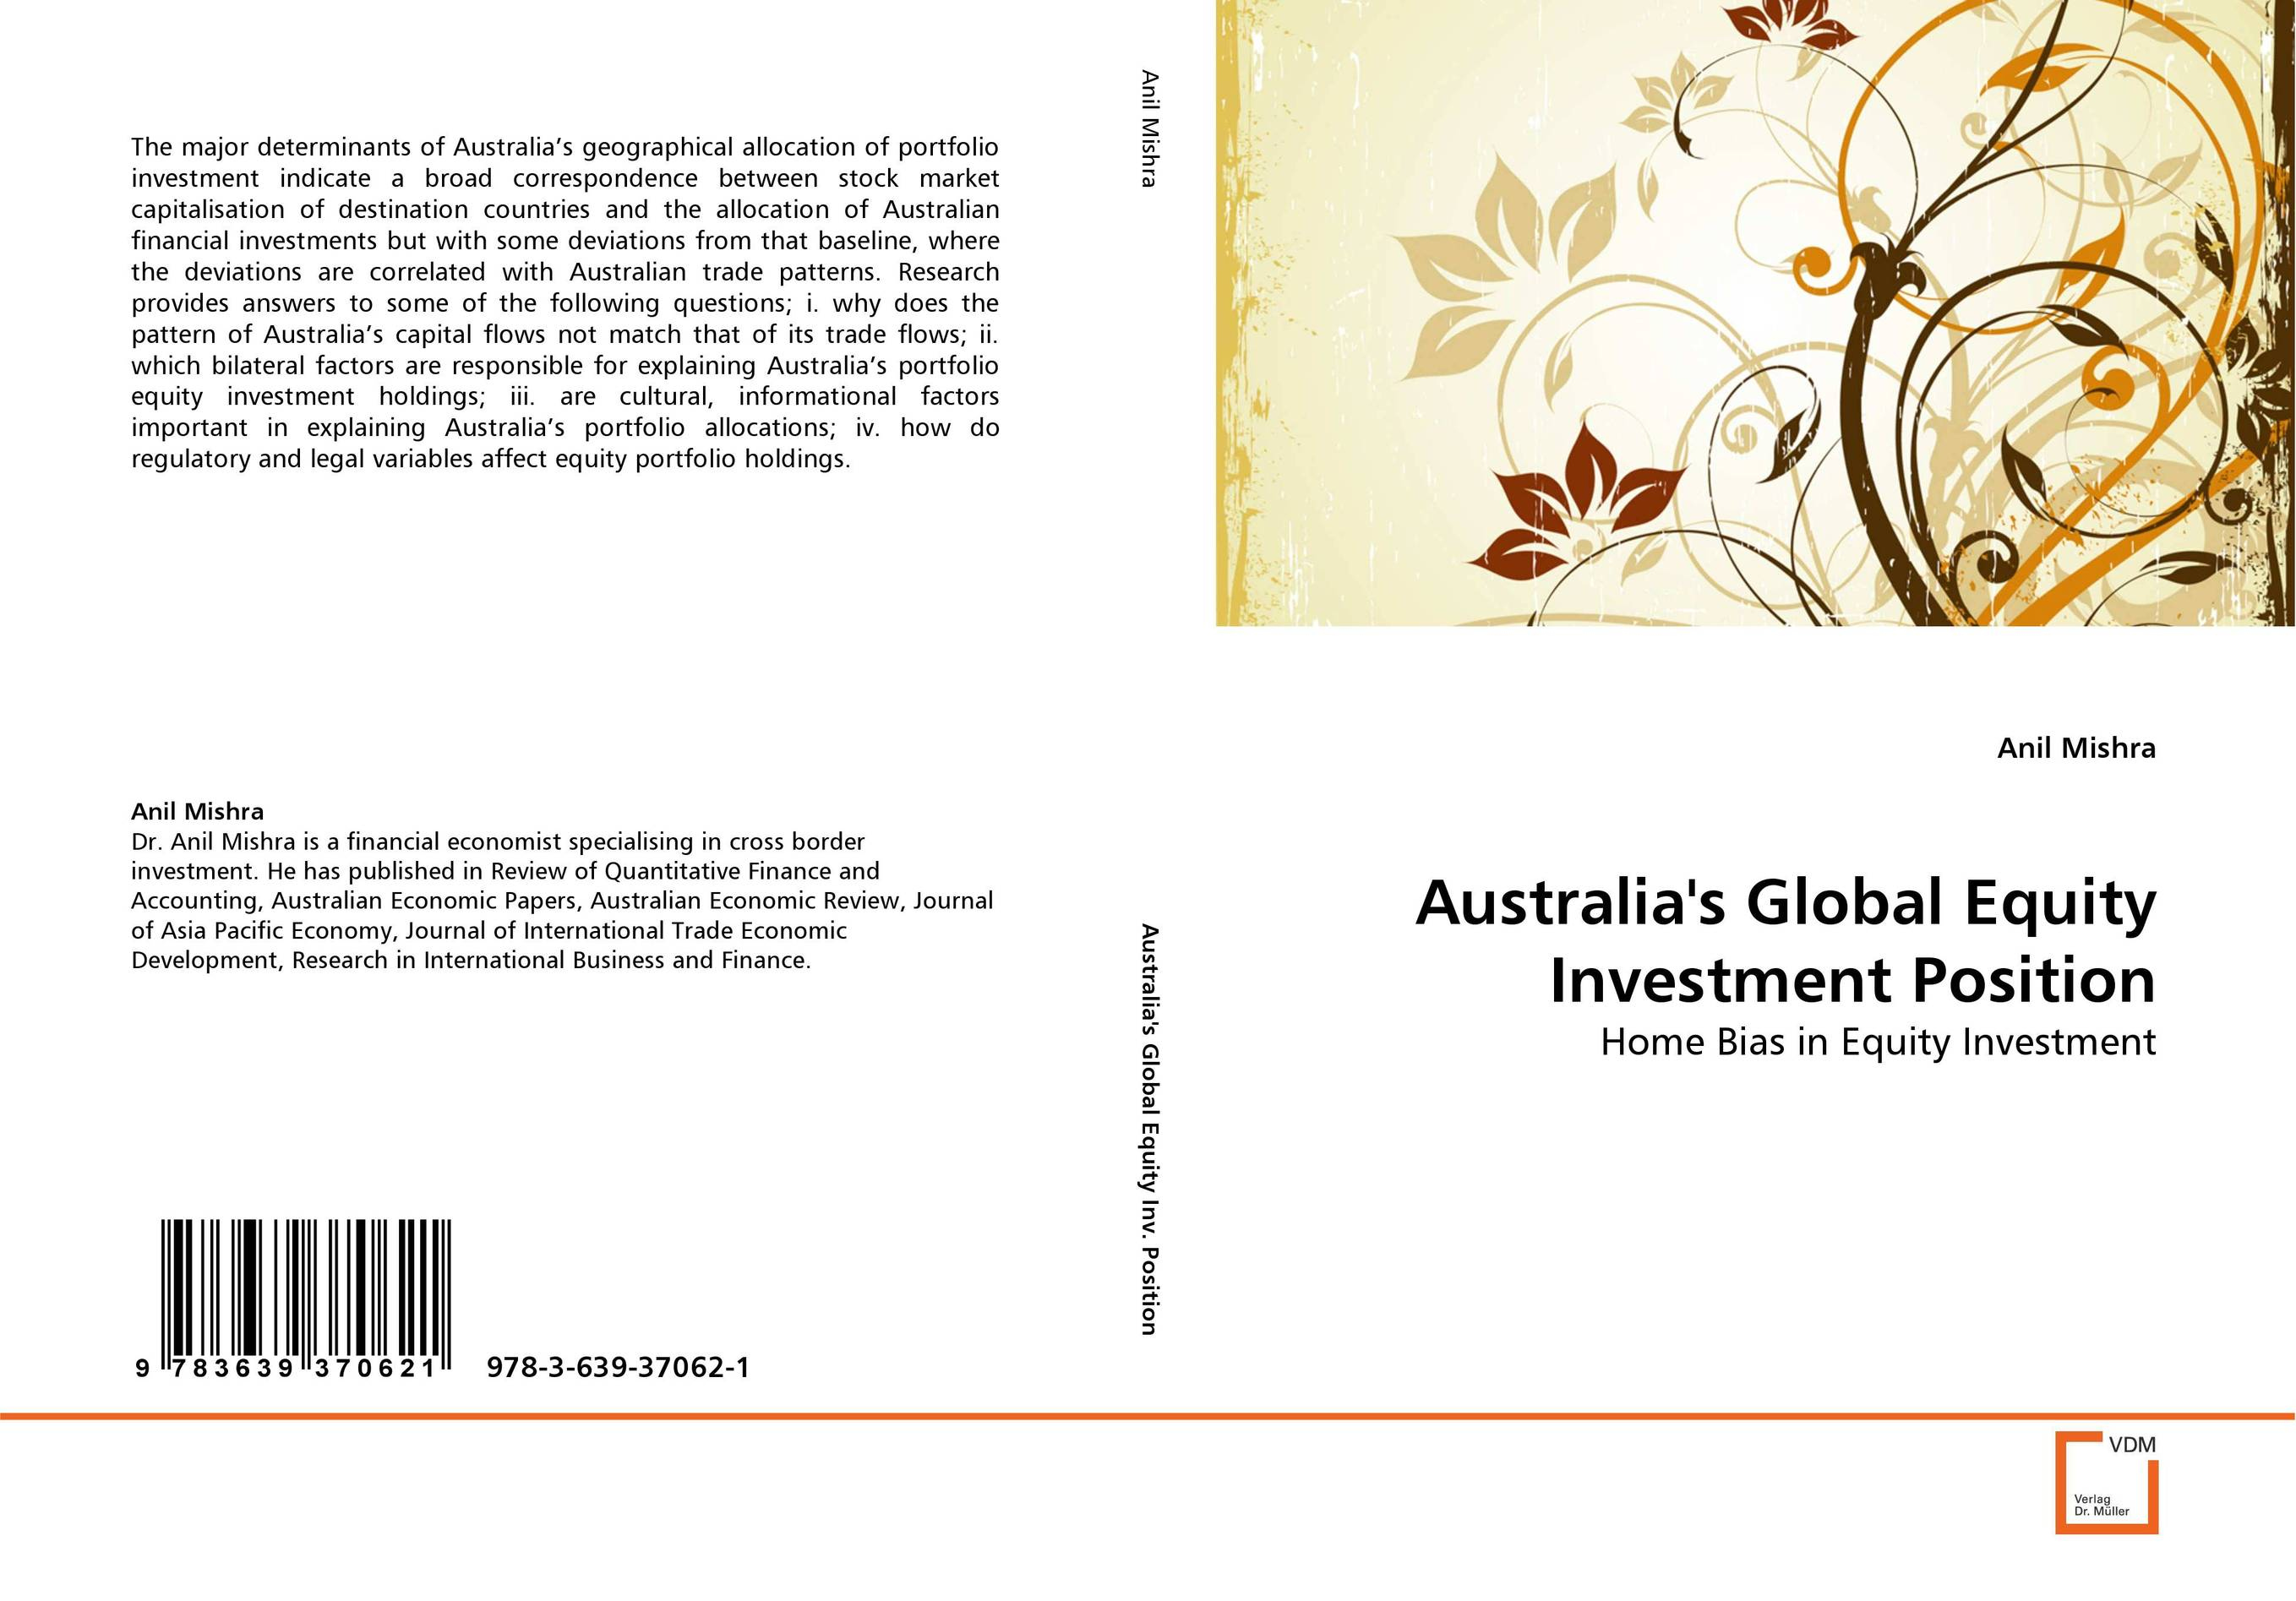 Australia''s Global Equity Investment Position sean casterline d investor s passport to hedge fund profits unique investment strategies for today s global capital markets